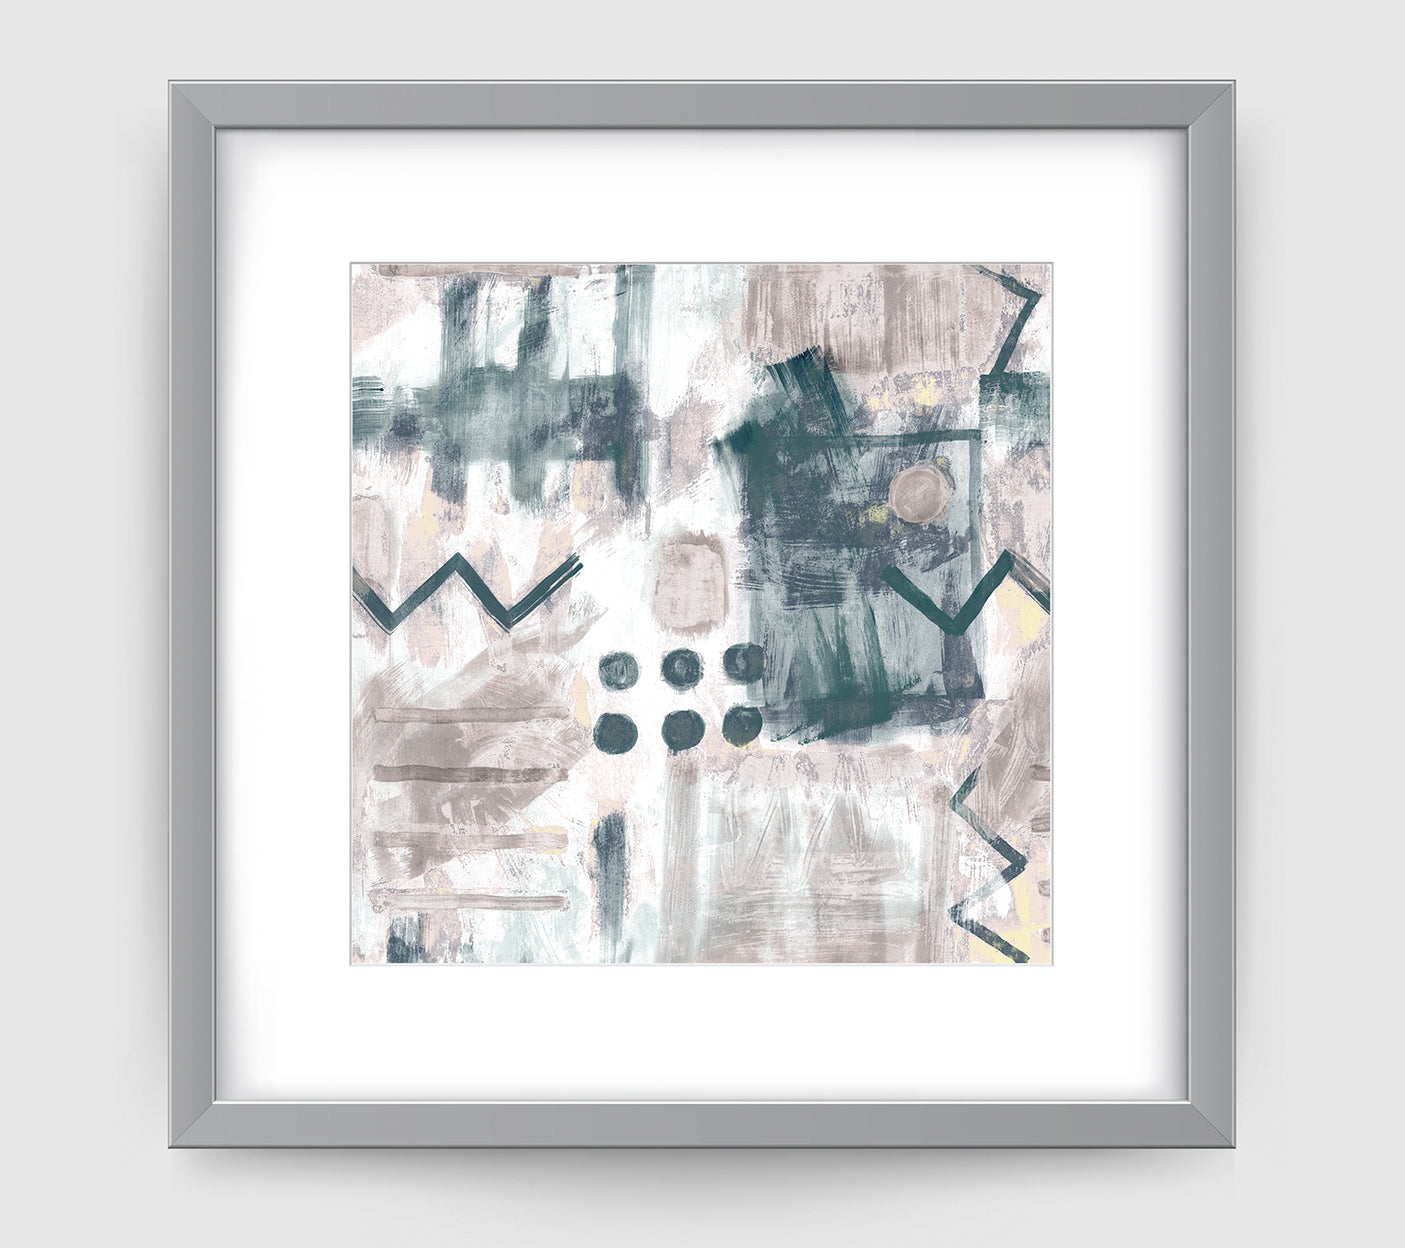 Galleria Abstract Art Print Di Lewis Living Room Wall Decor